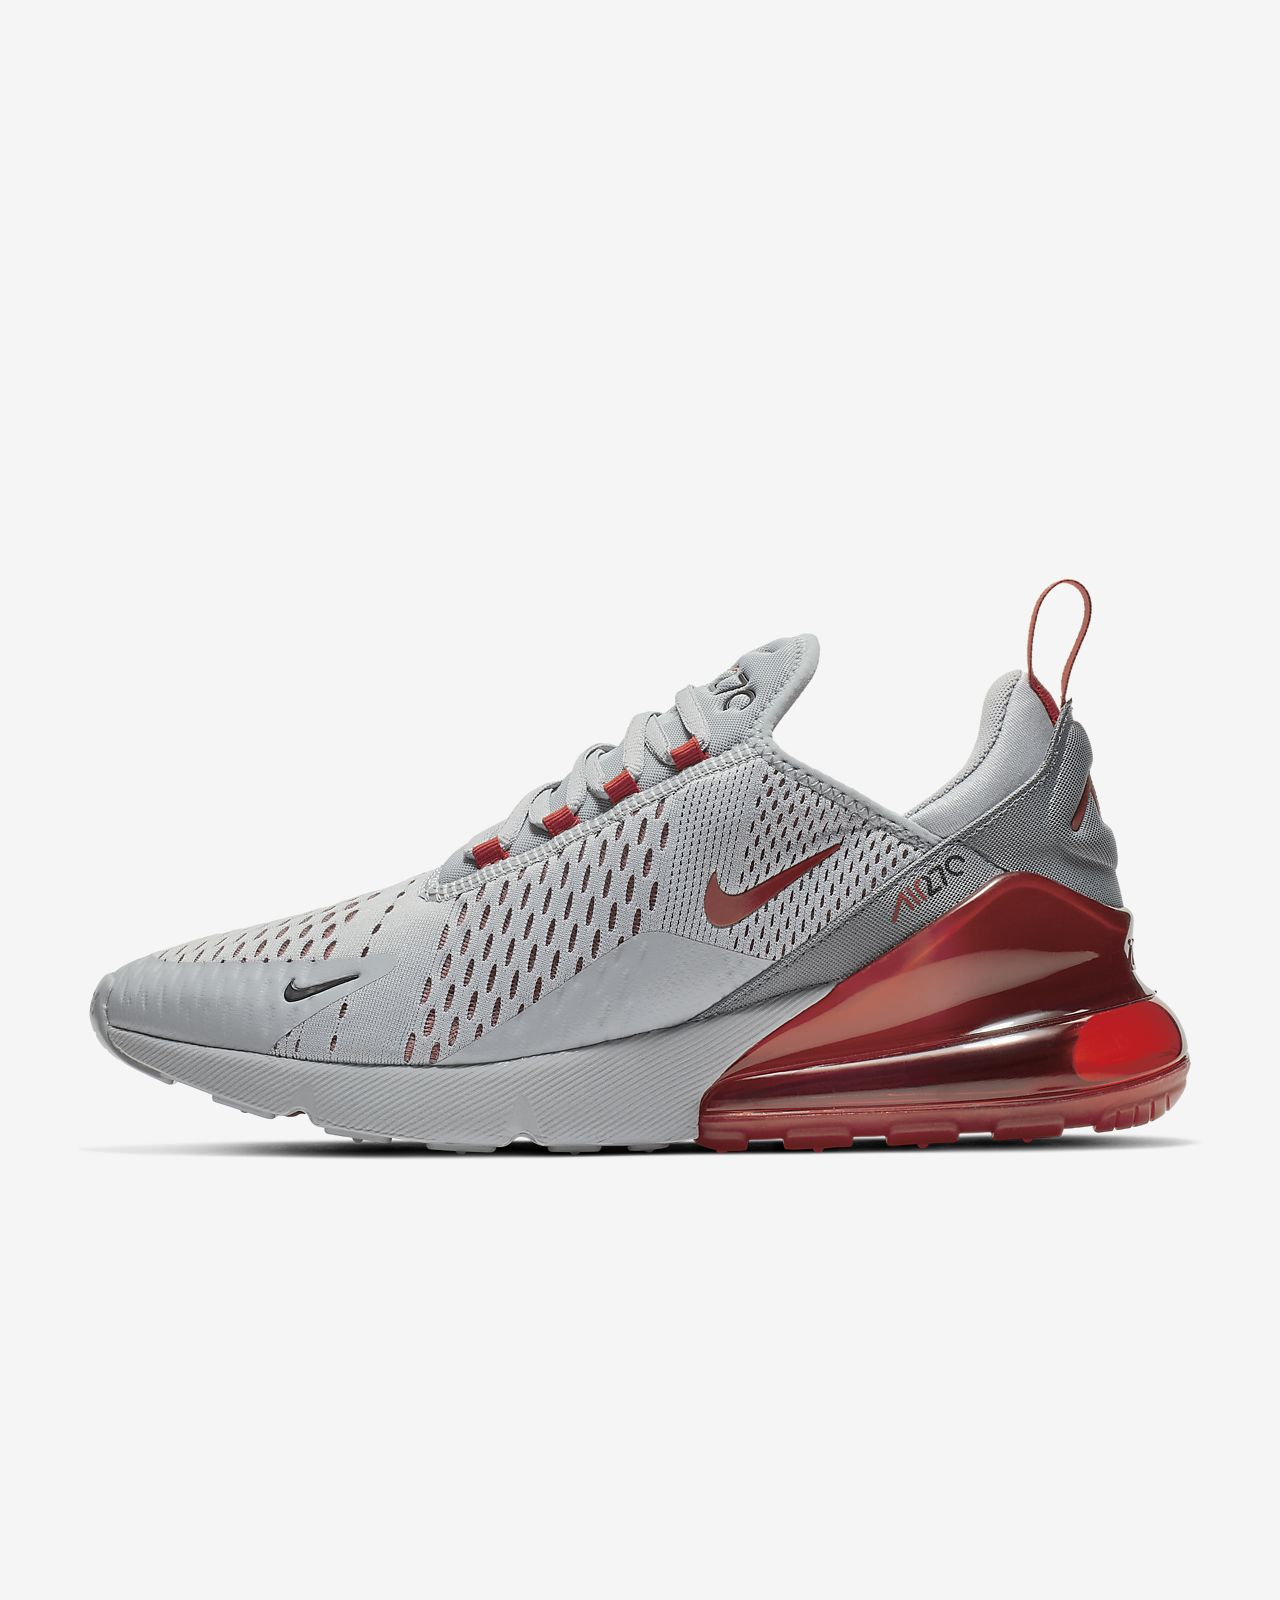 cheaper 7a1cb 576f7 Nike Air Max 270